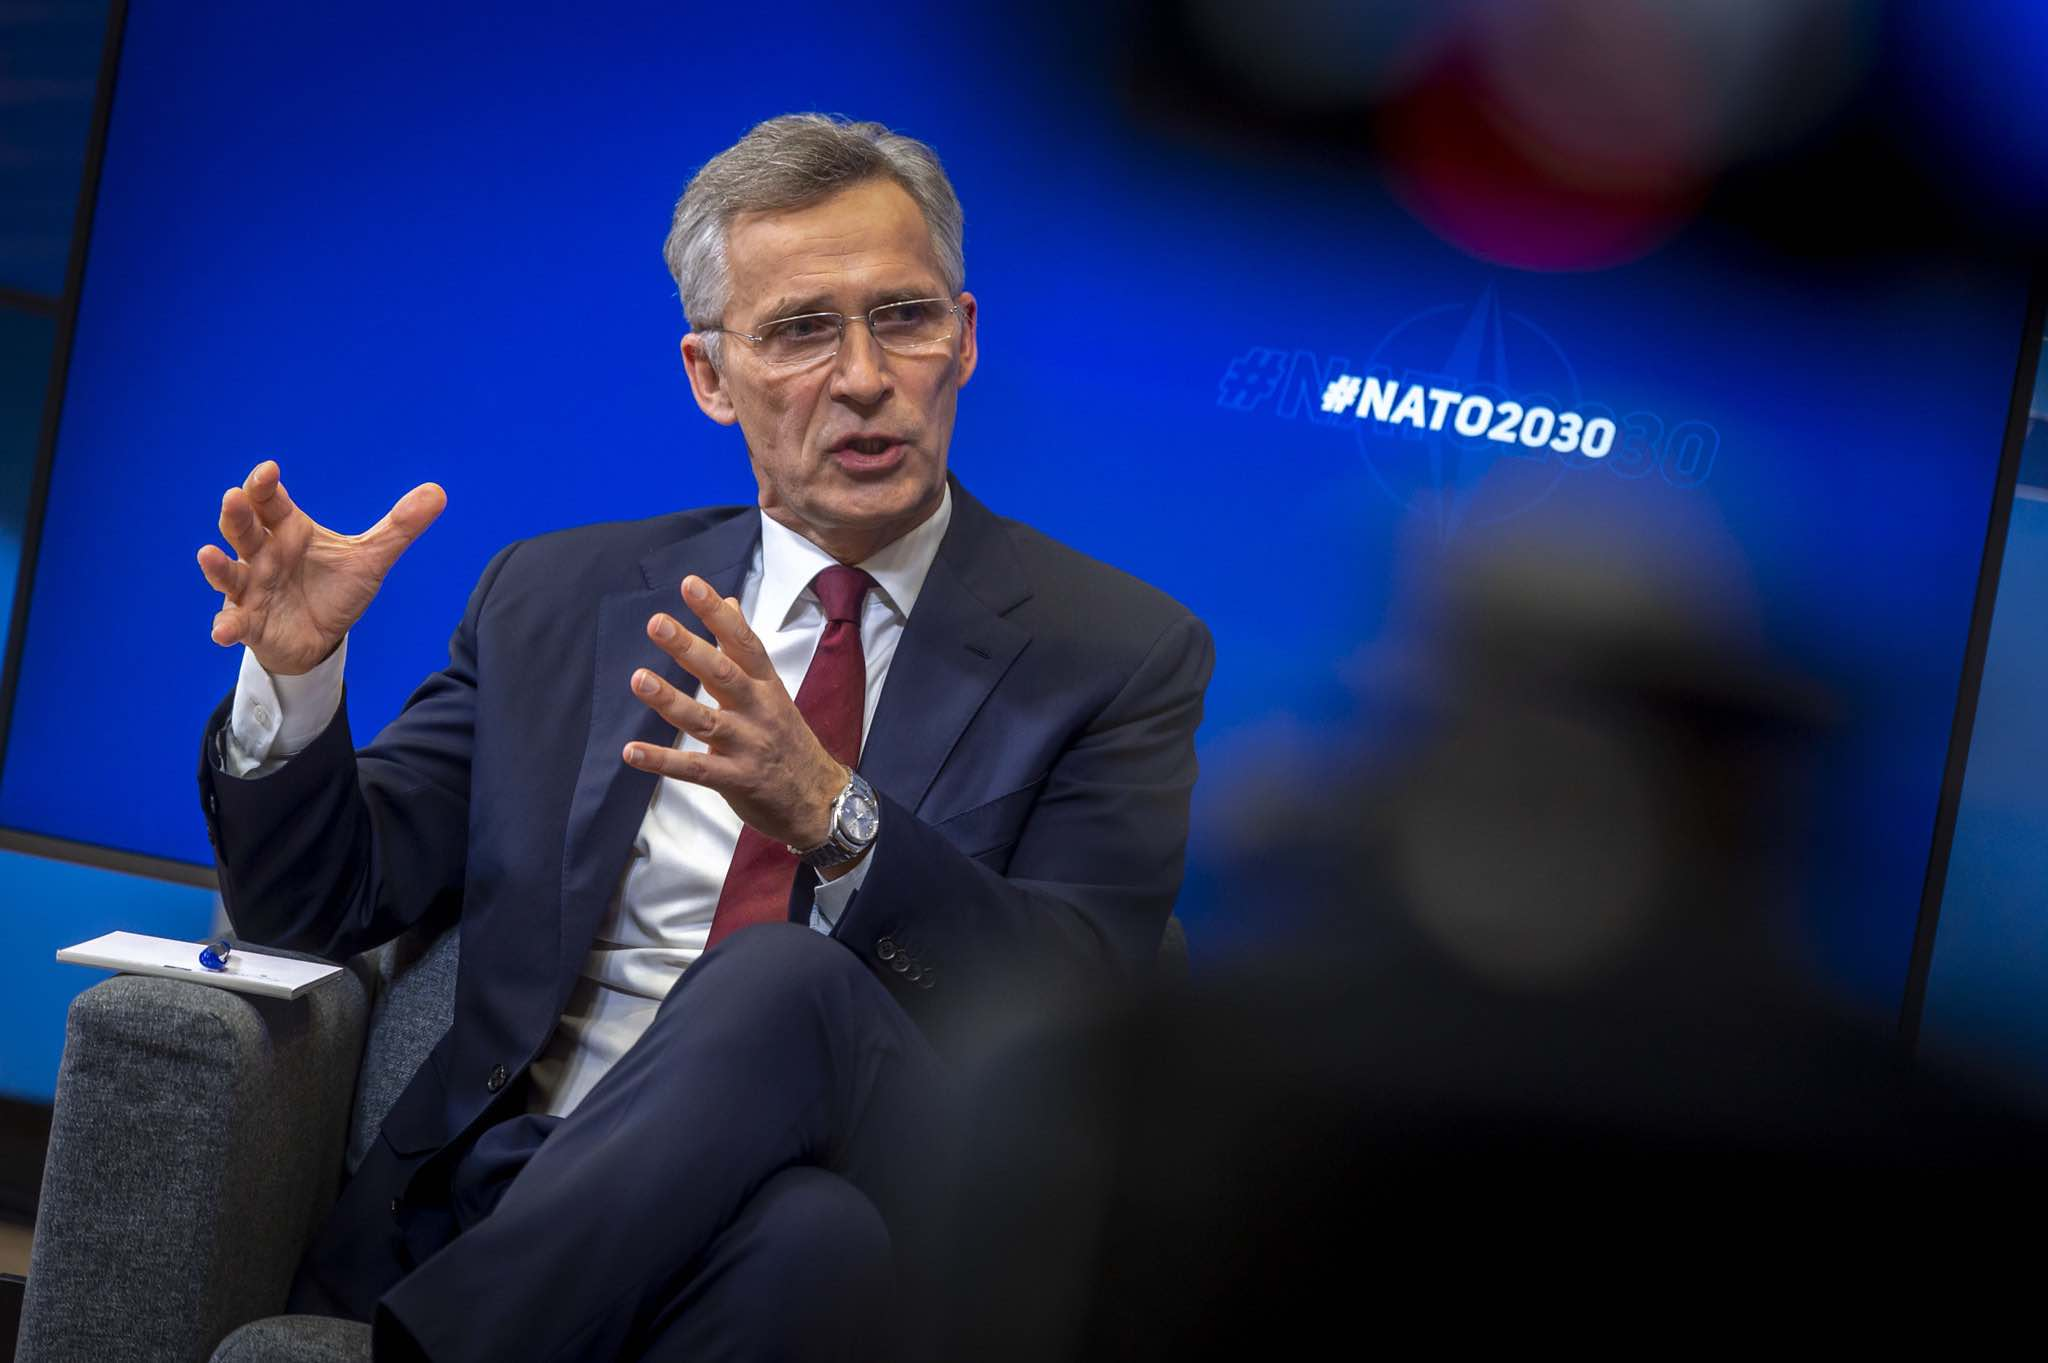 NATO Secretary General Jens Stoltenberg launched his outline for NATO 2030 in an online conversation on 8 June (NATO/Flickr)